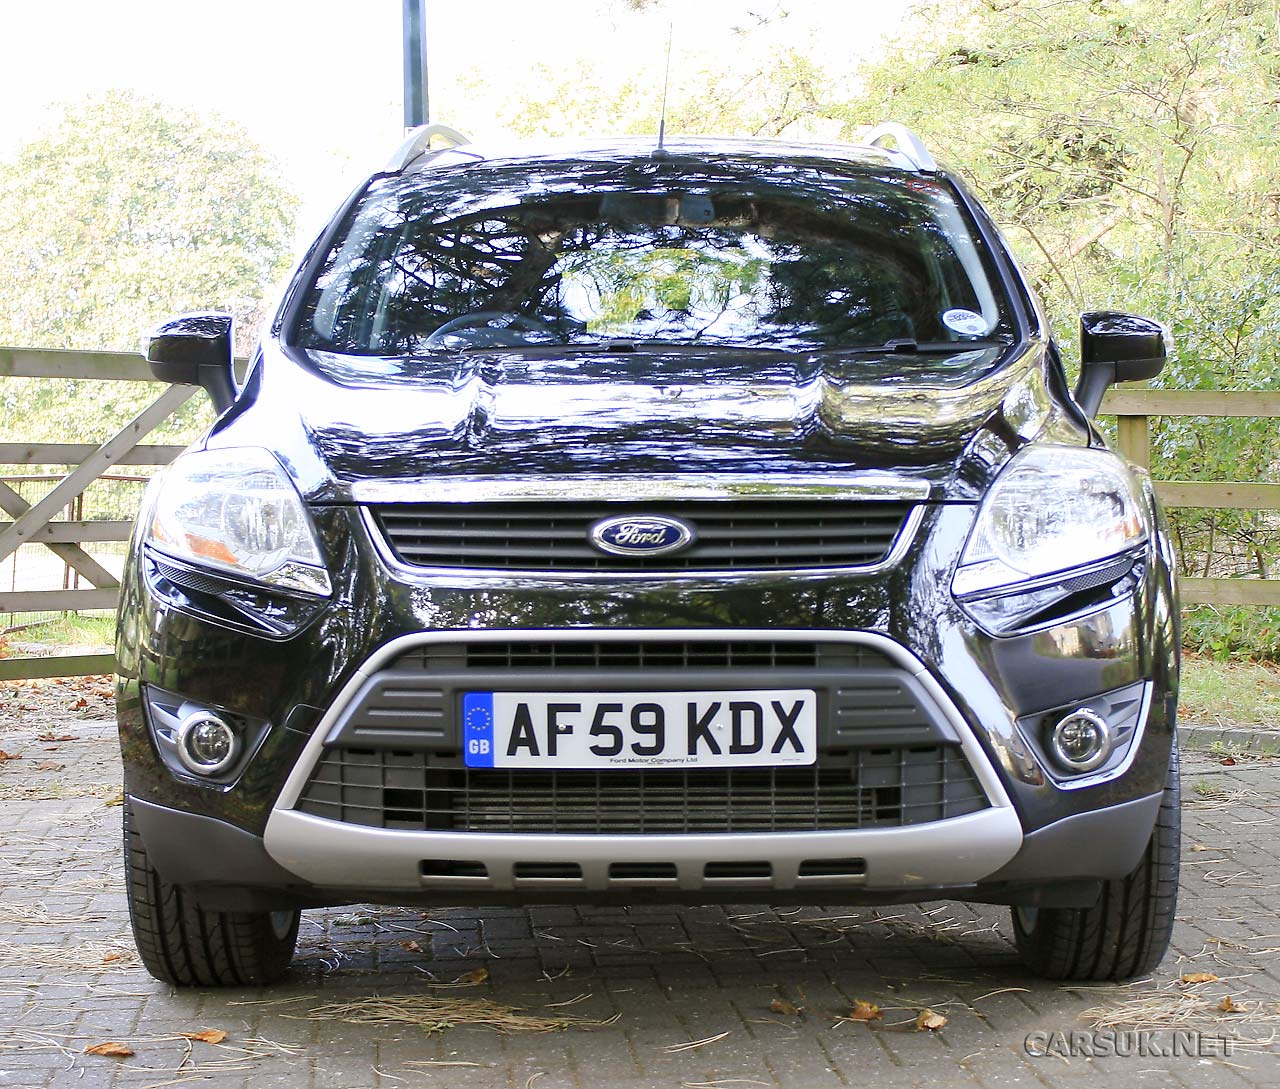 ford kuga 2012 review amazing pictures and images look at the car. Black Bedroom Furniture Sets. Home Design Ideas